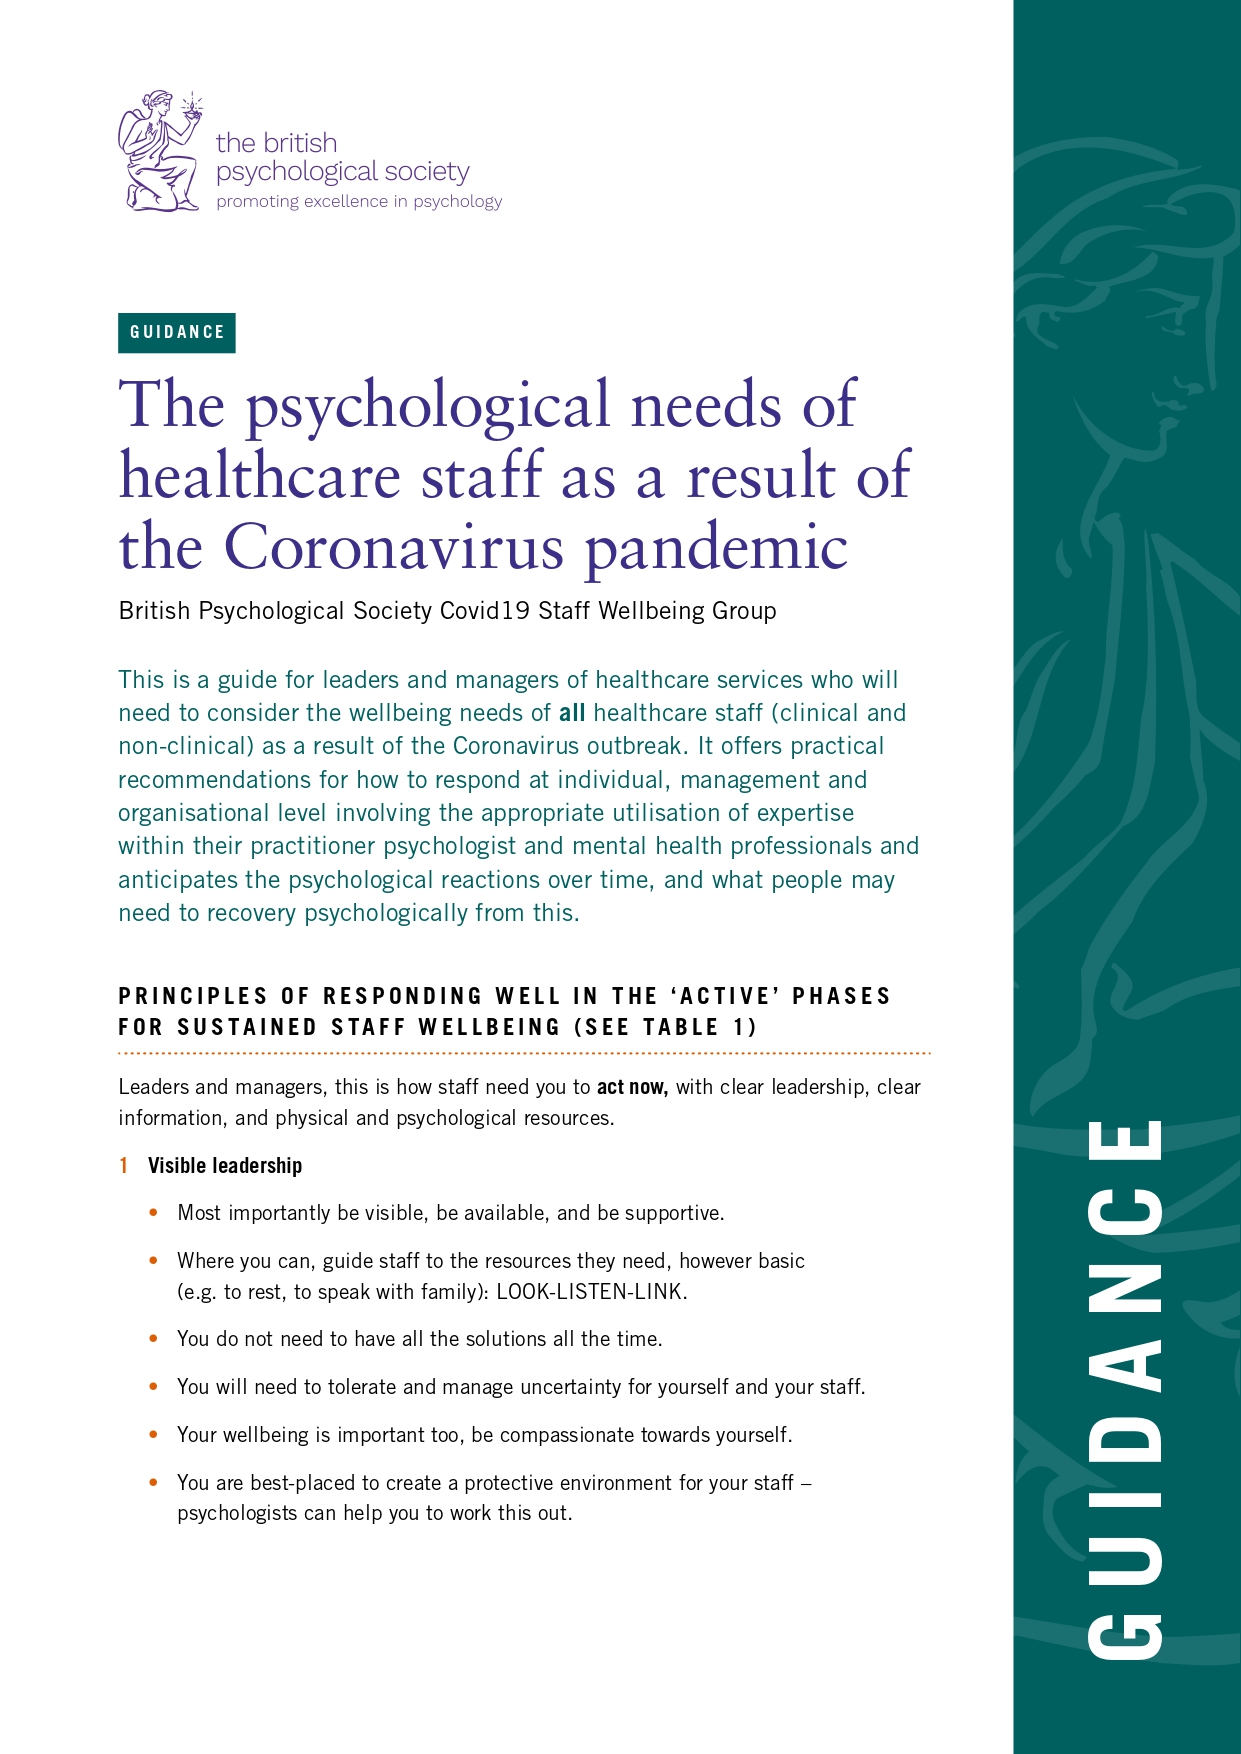 psychological needs of healthcare staff Coronavirus pandemic page 0001